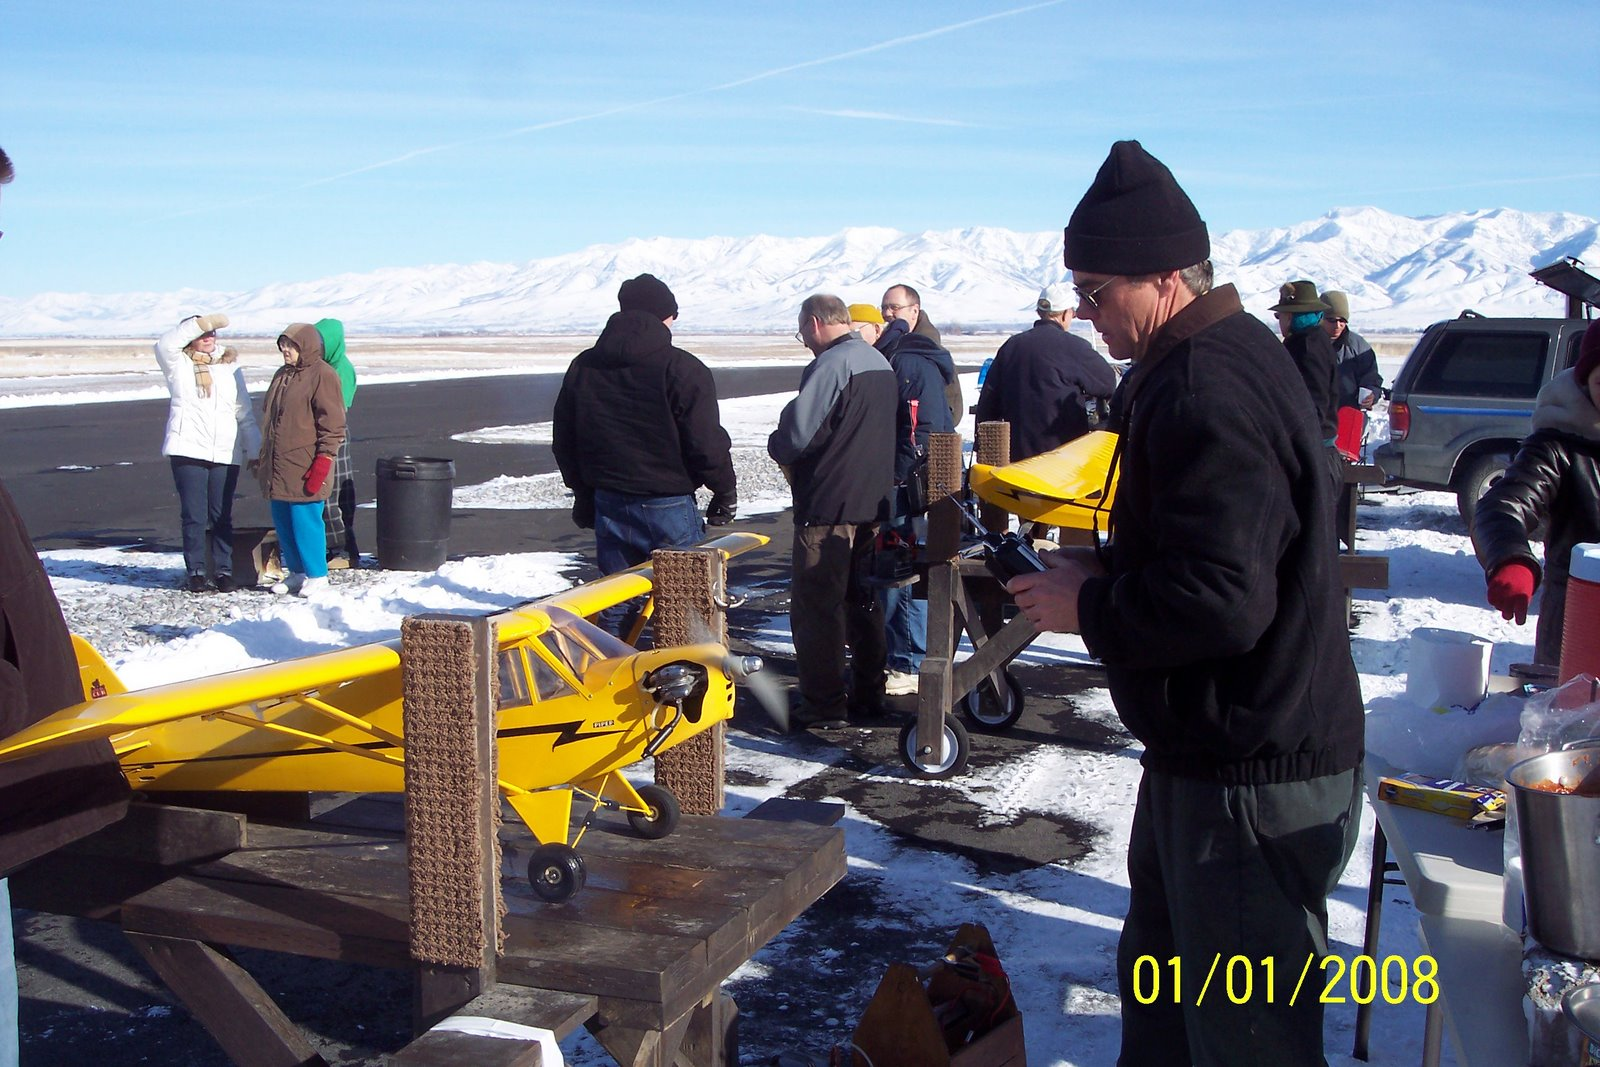 IVAN HOOLEY PRE-FLIGHT CHECK AFTER KNOCKING ICE CYCLE FROM THE CUB'S MUFFLER AT FREEZE FLY.